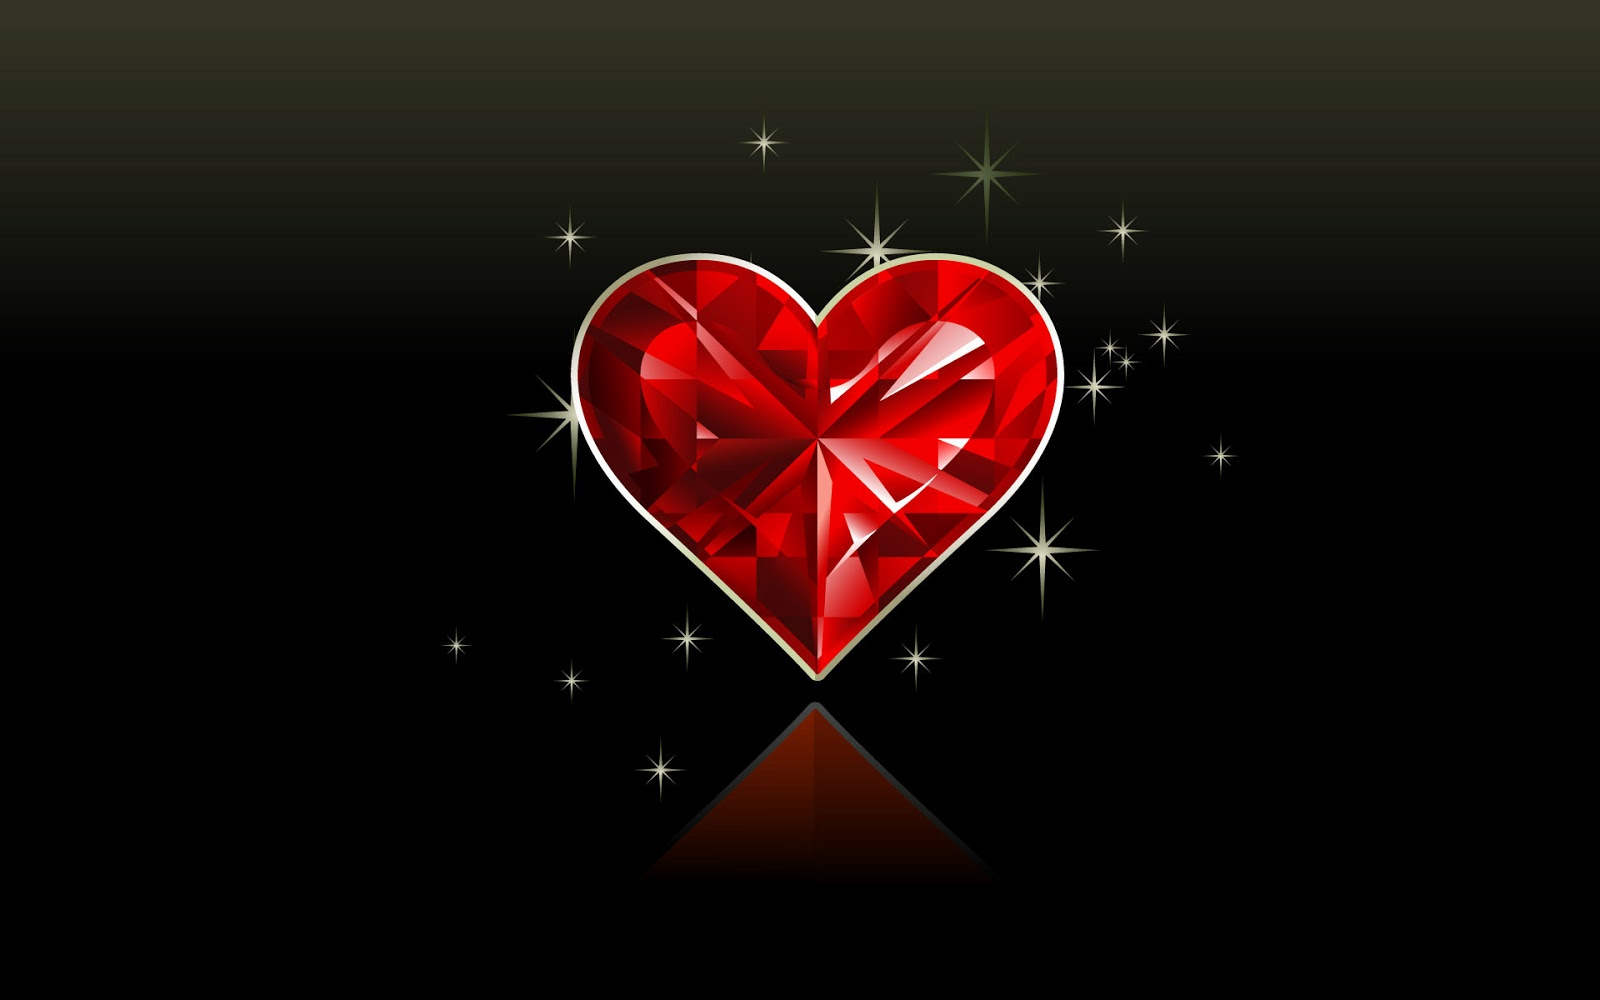 Red heart wallpaper, heart wallpapers | Amazing Wallpapers